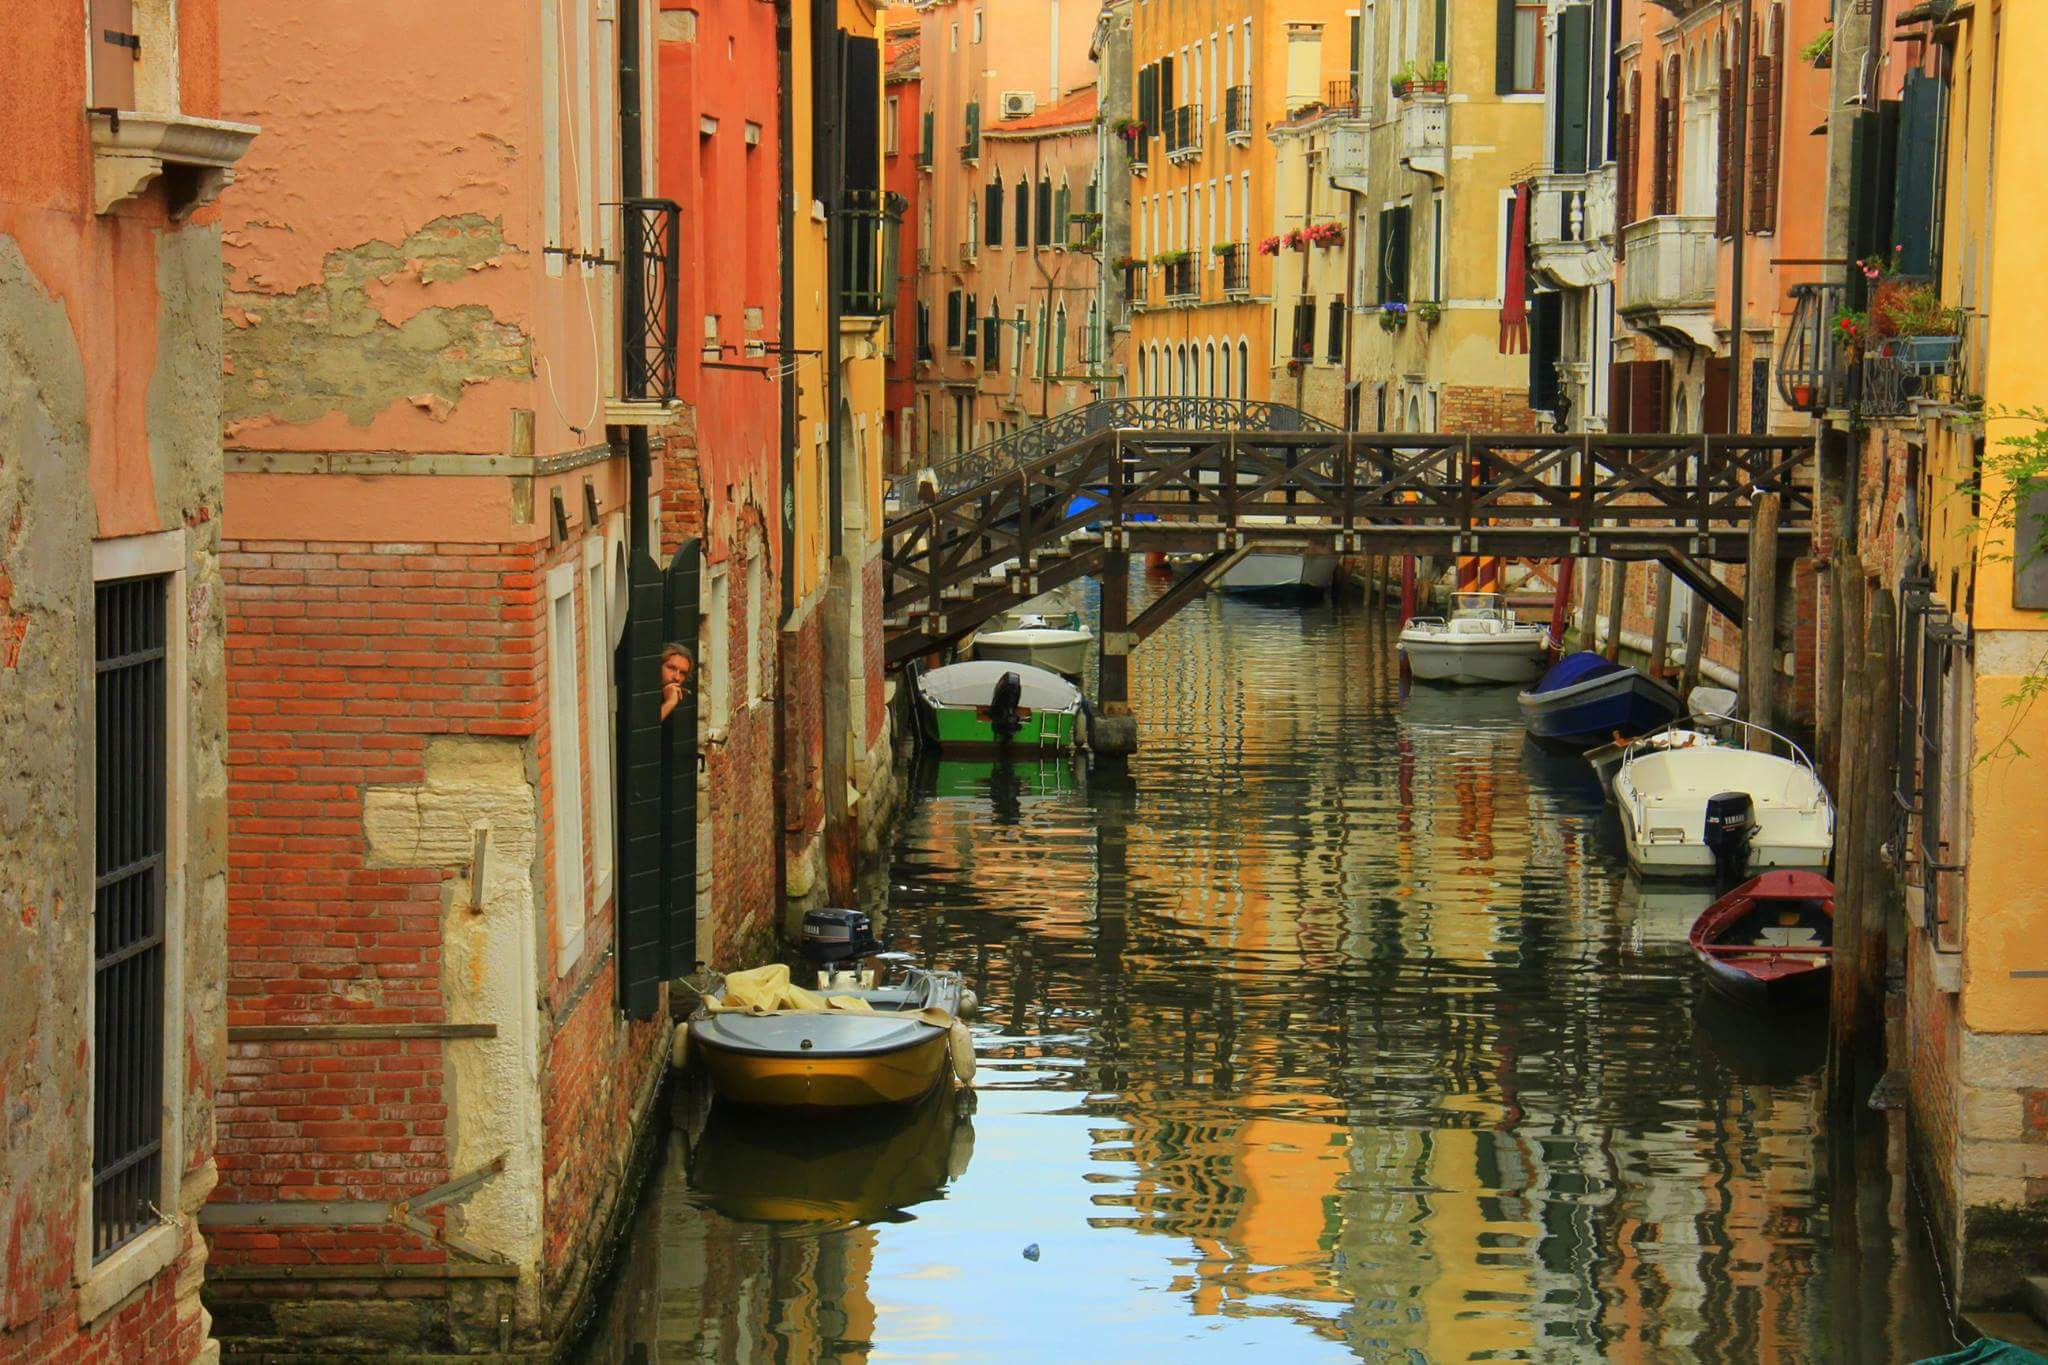 Reflections on a Venice canal